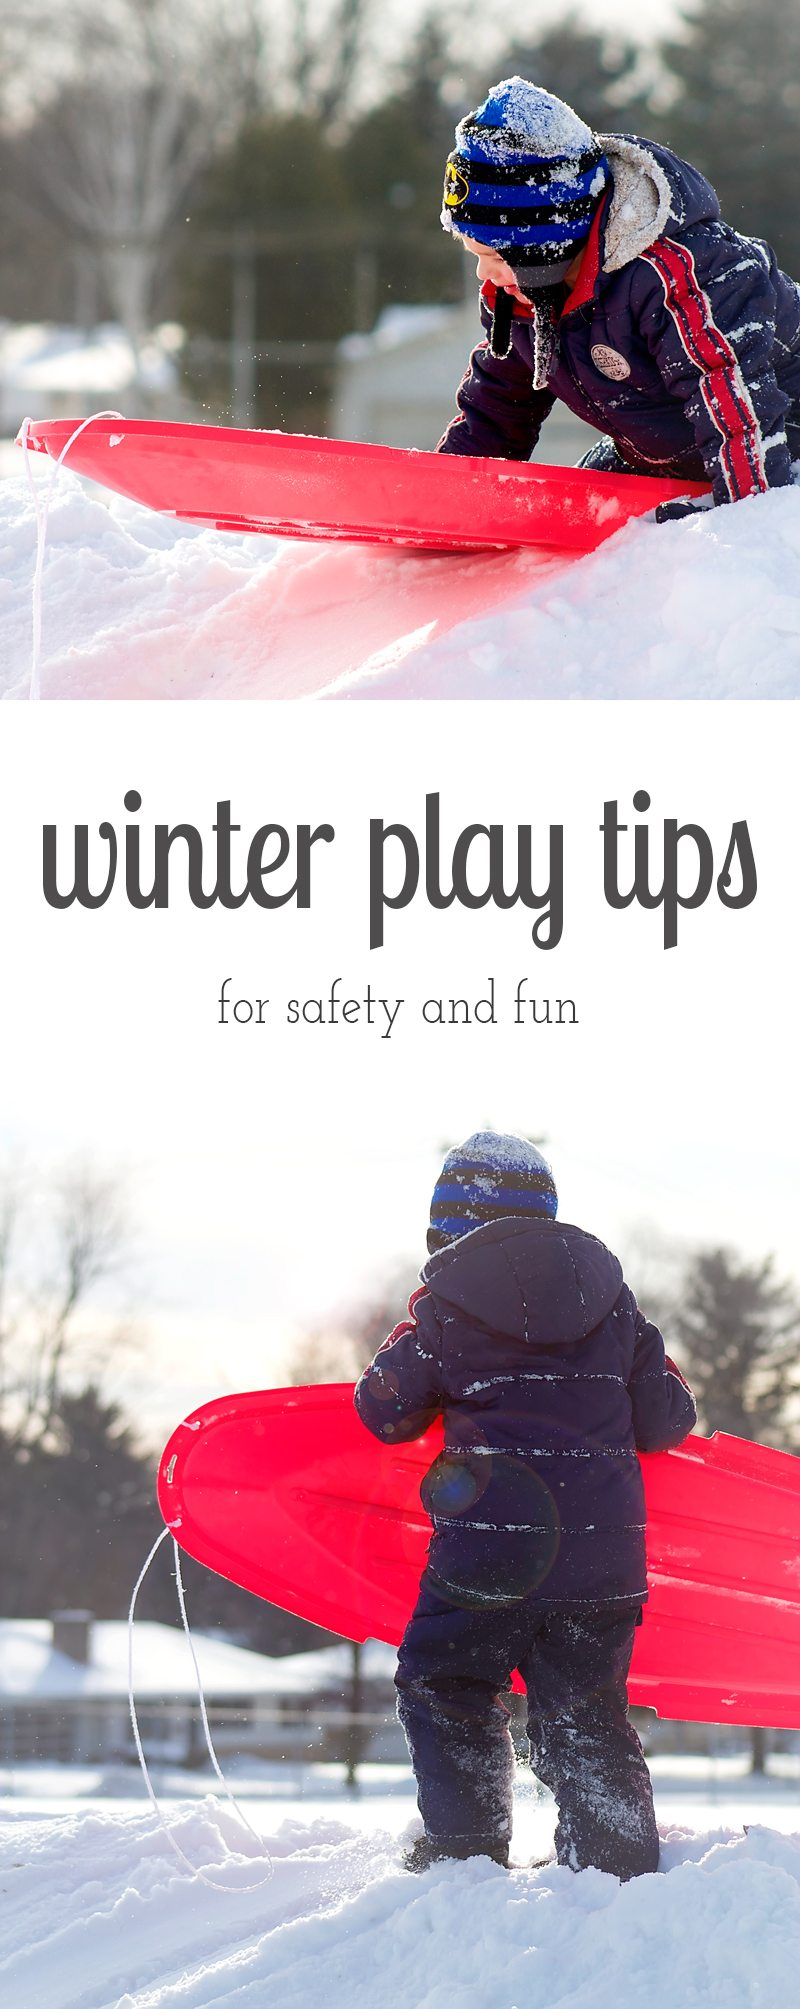 Heading outside for some winter play with the kids? Before you do, check out these winter play tips for safety and fun, shared from a former Outdoor Education Teacher.